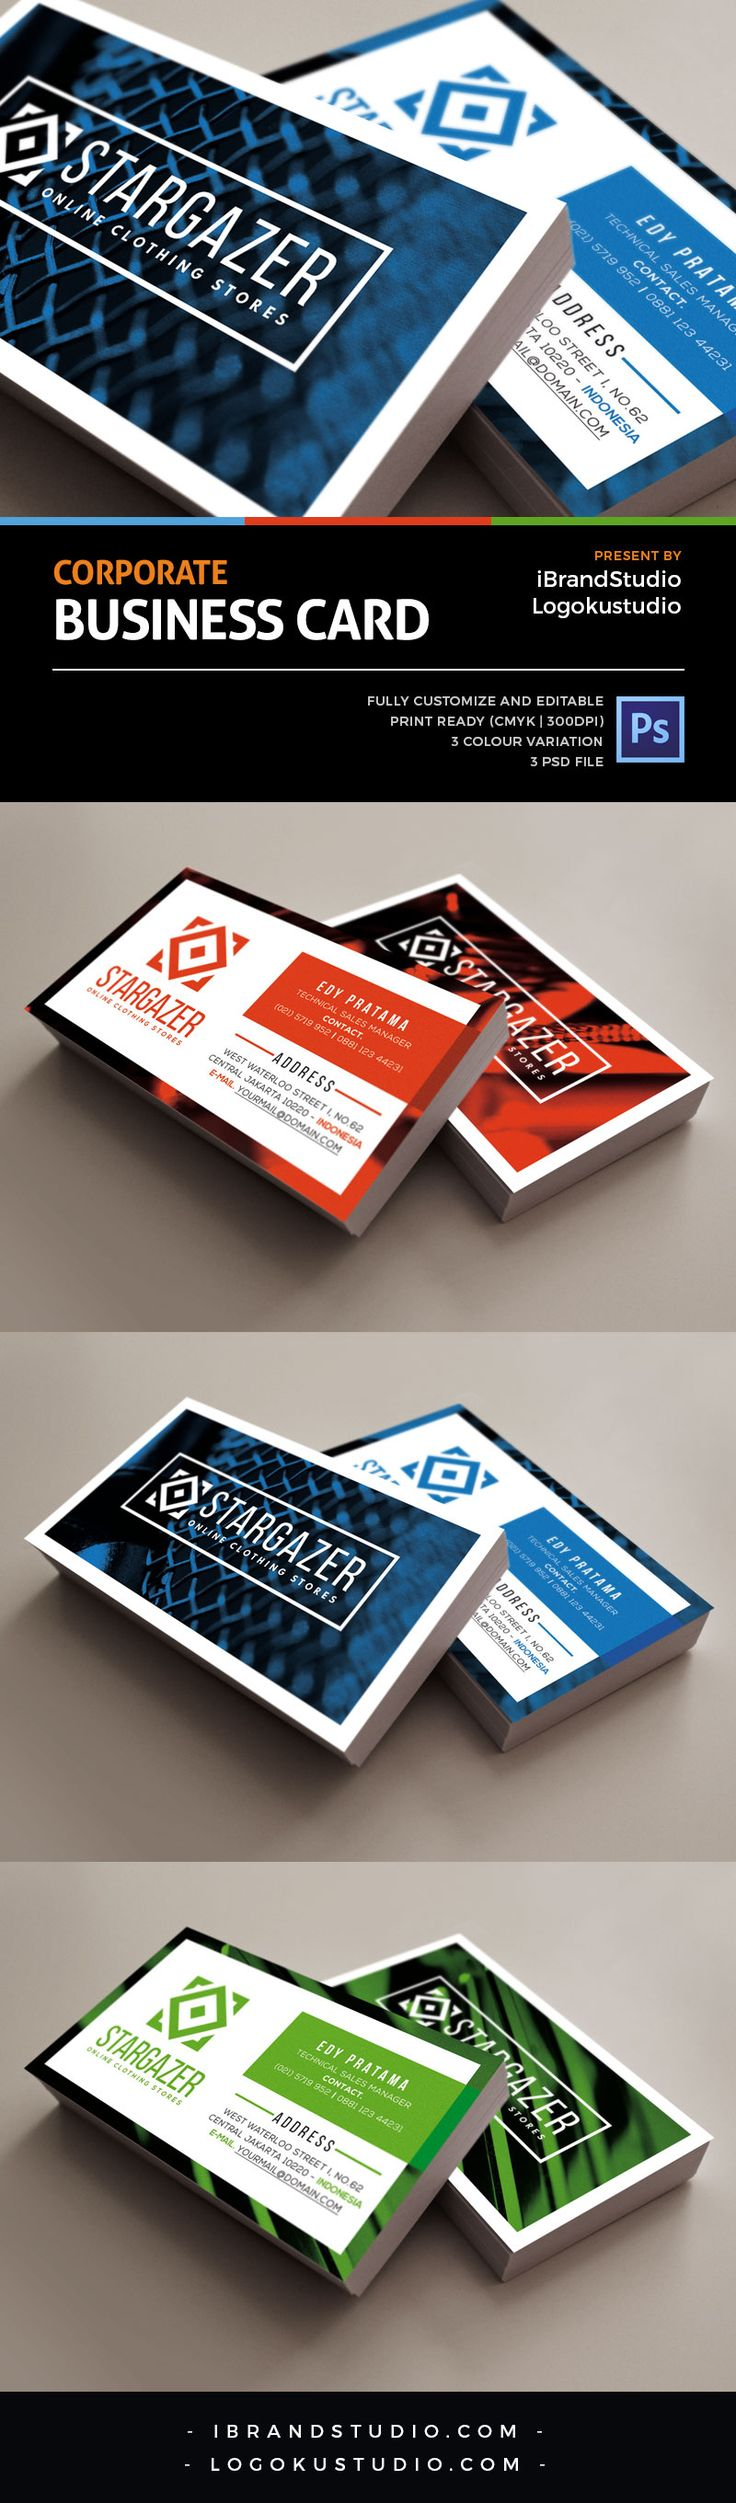 Free Corporate Business Card Template Vol.2